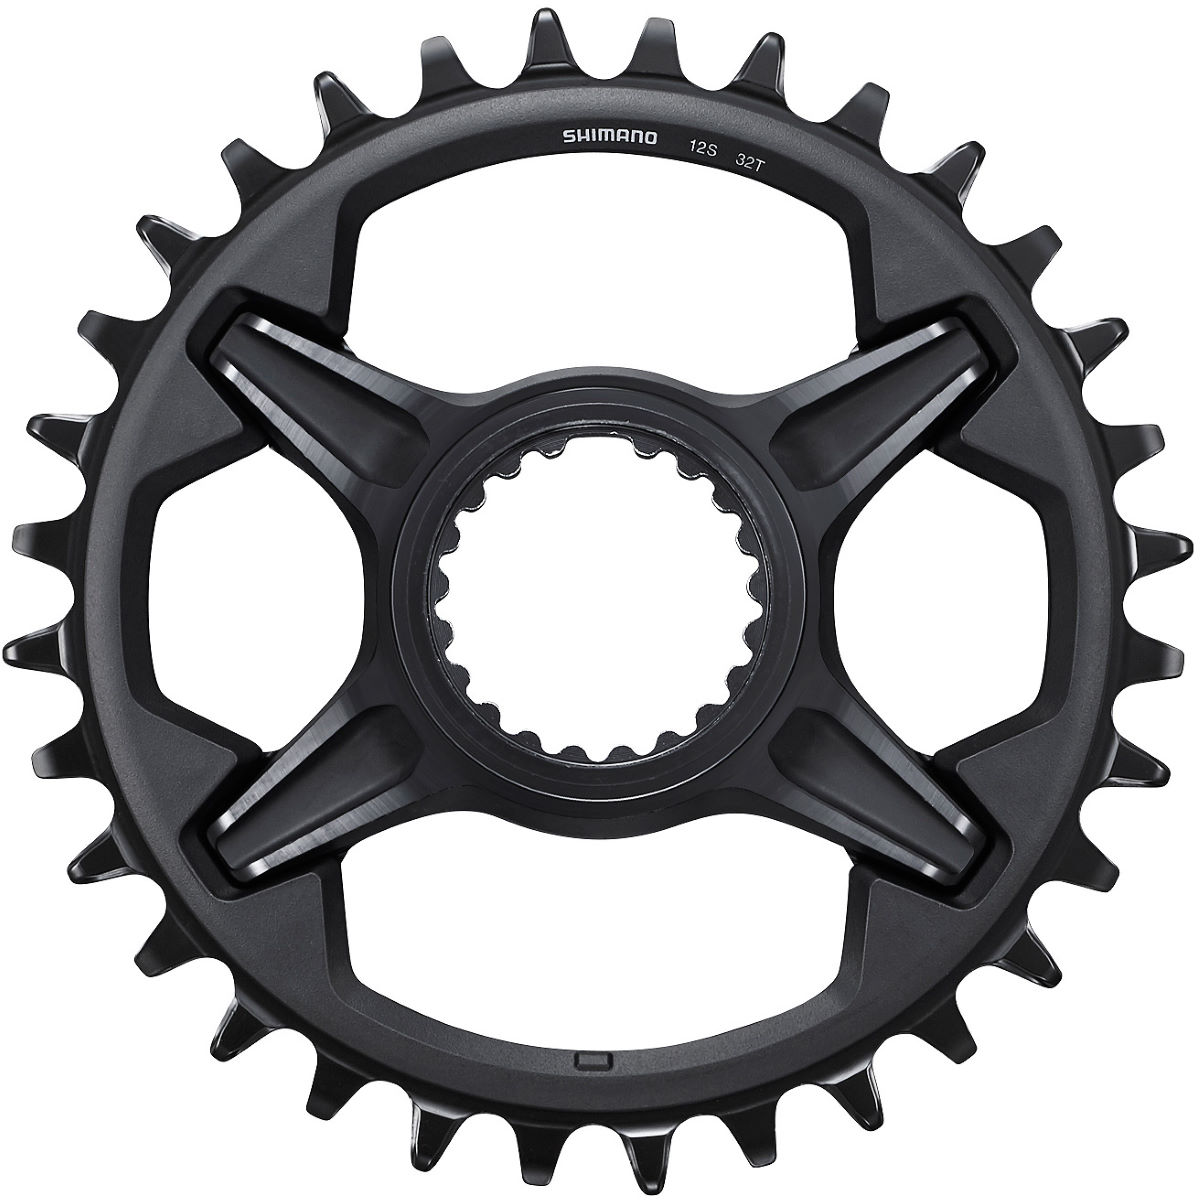 Shimano XT M8100 12 Speed Chainring   Chain Rings